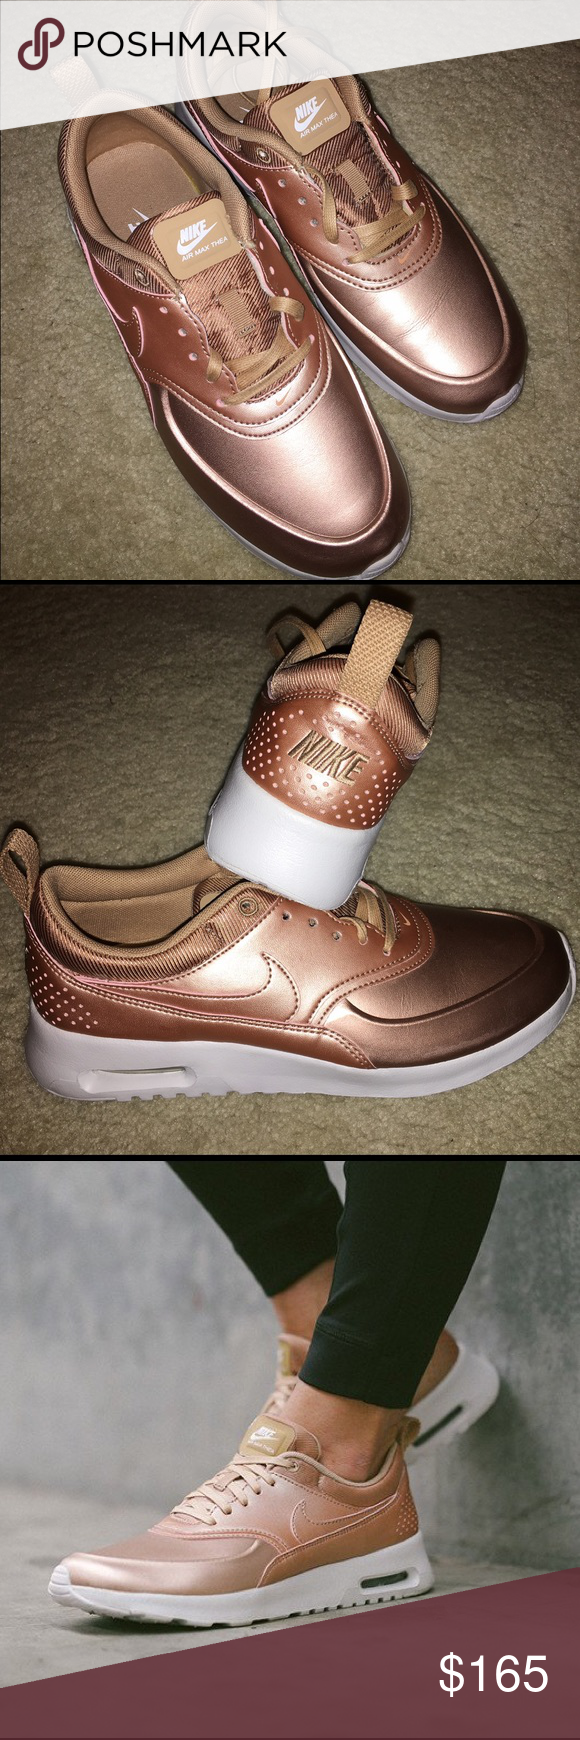 0ba4f819acf8 Nike Air Max Thea SE Rose Gold Size 7.5 Limited edition (hard to find!